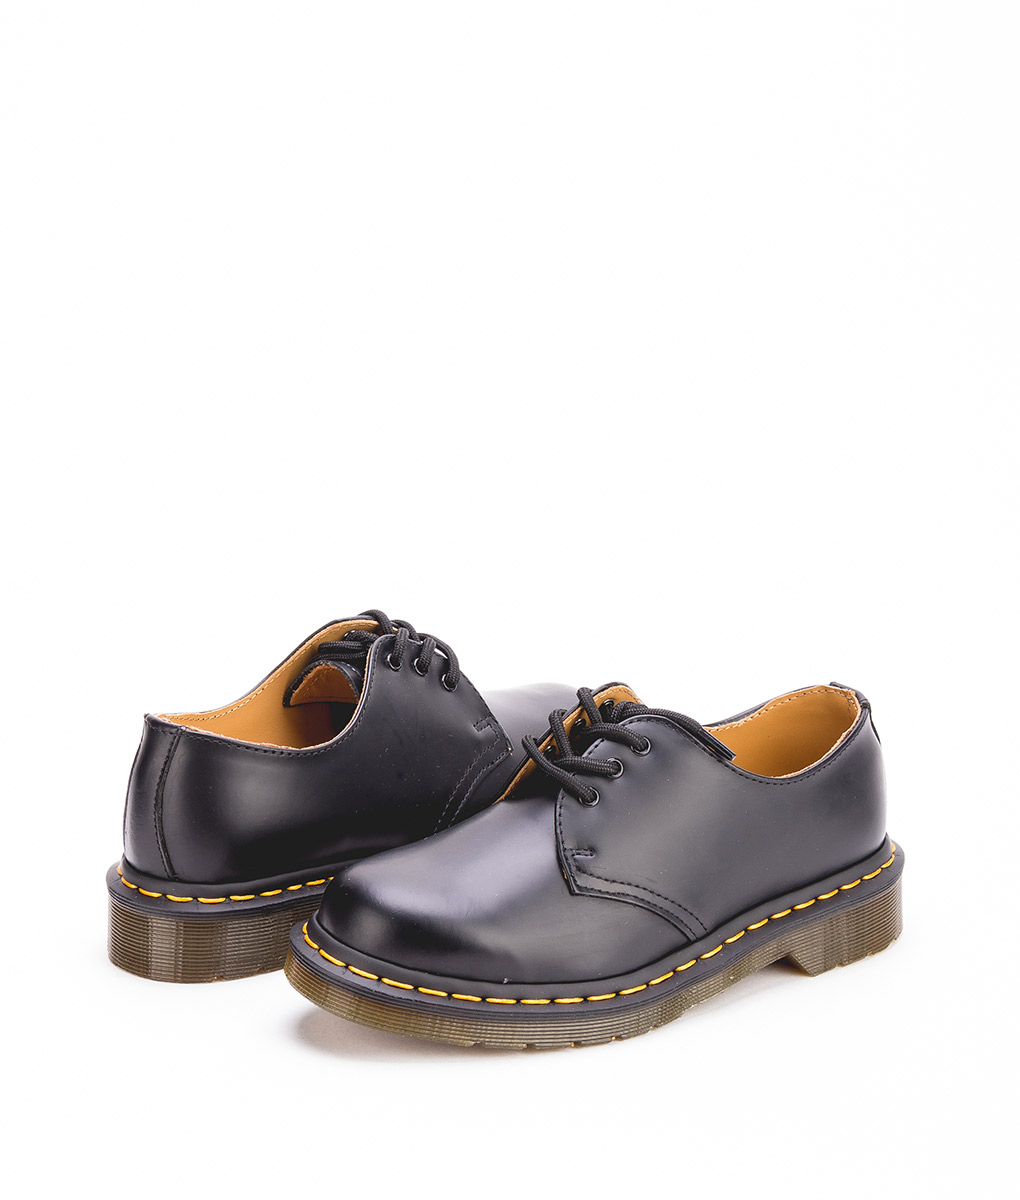 los angeles entire collection brand new DR MARTENS Unisex Shoes 1461 59 10085001, Black